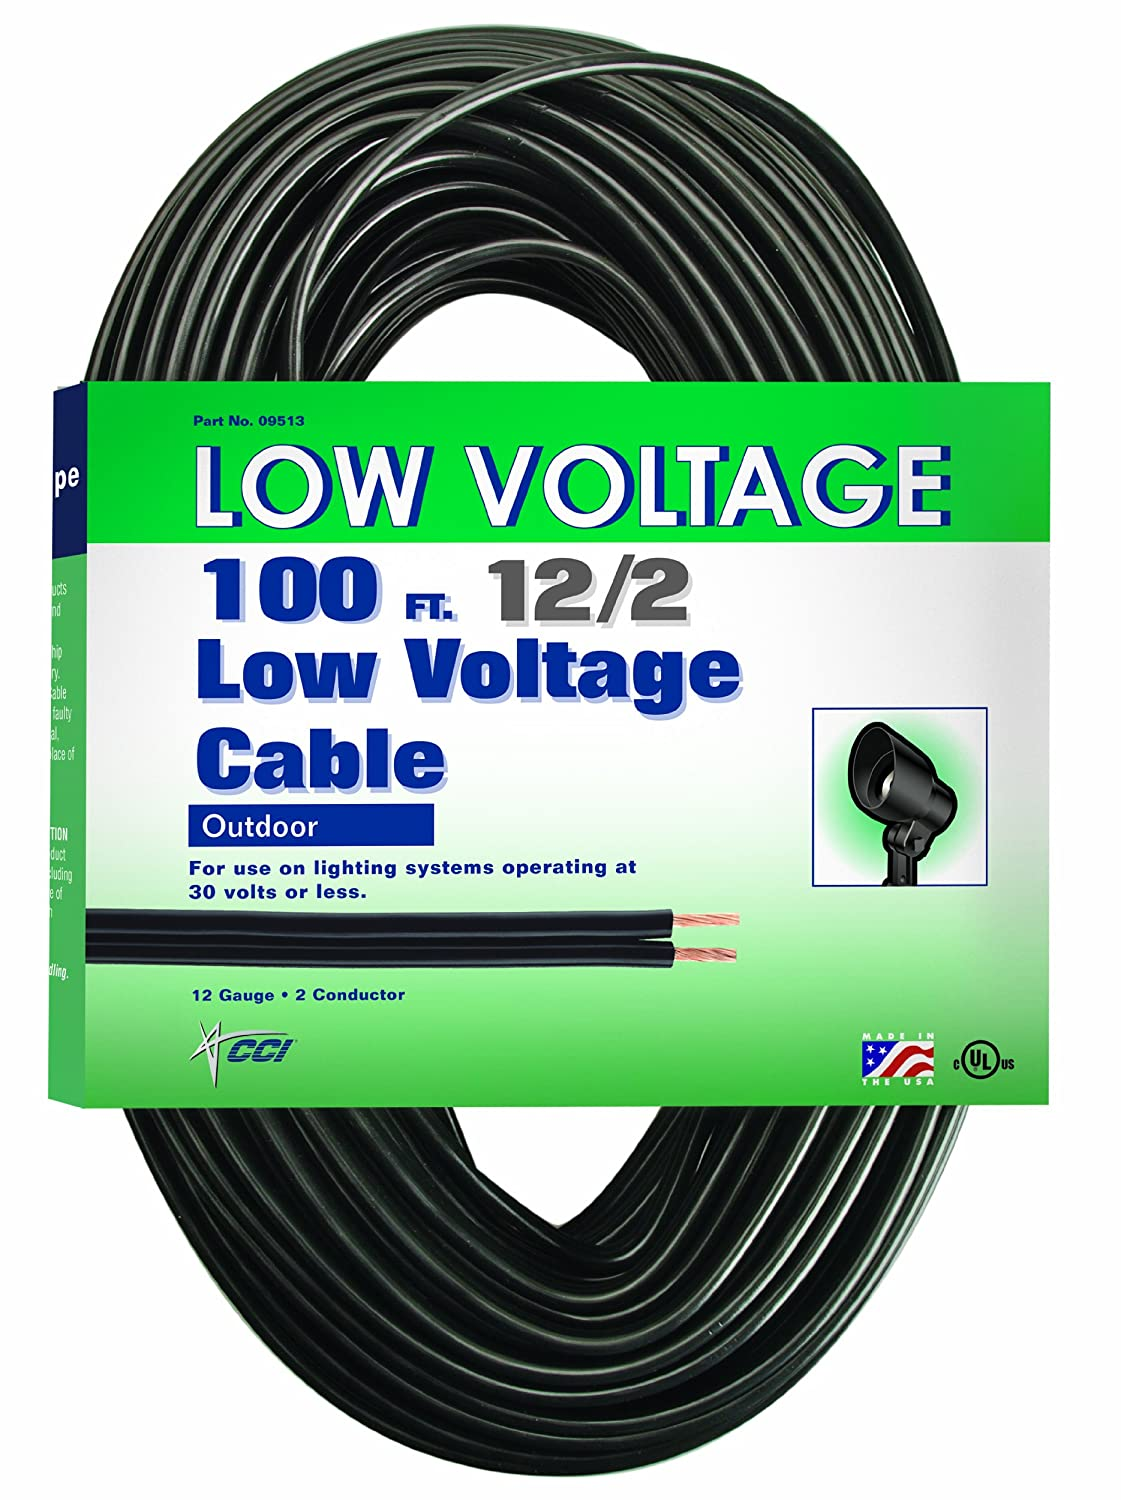 Coleman Cable 55269 250-Feet 2-Conductor 12-Gauge Low Voltage Underground Lighting Cable 552690408